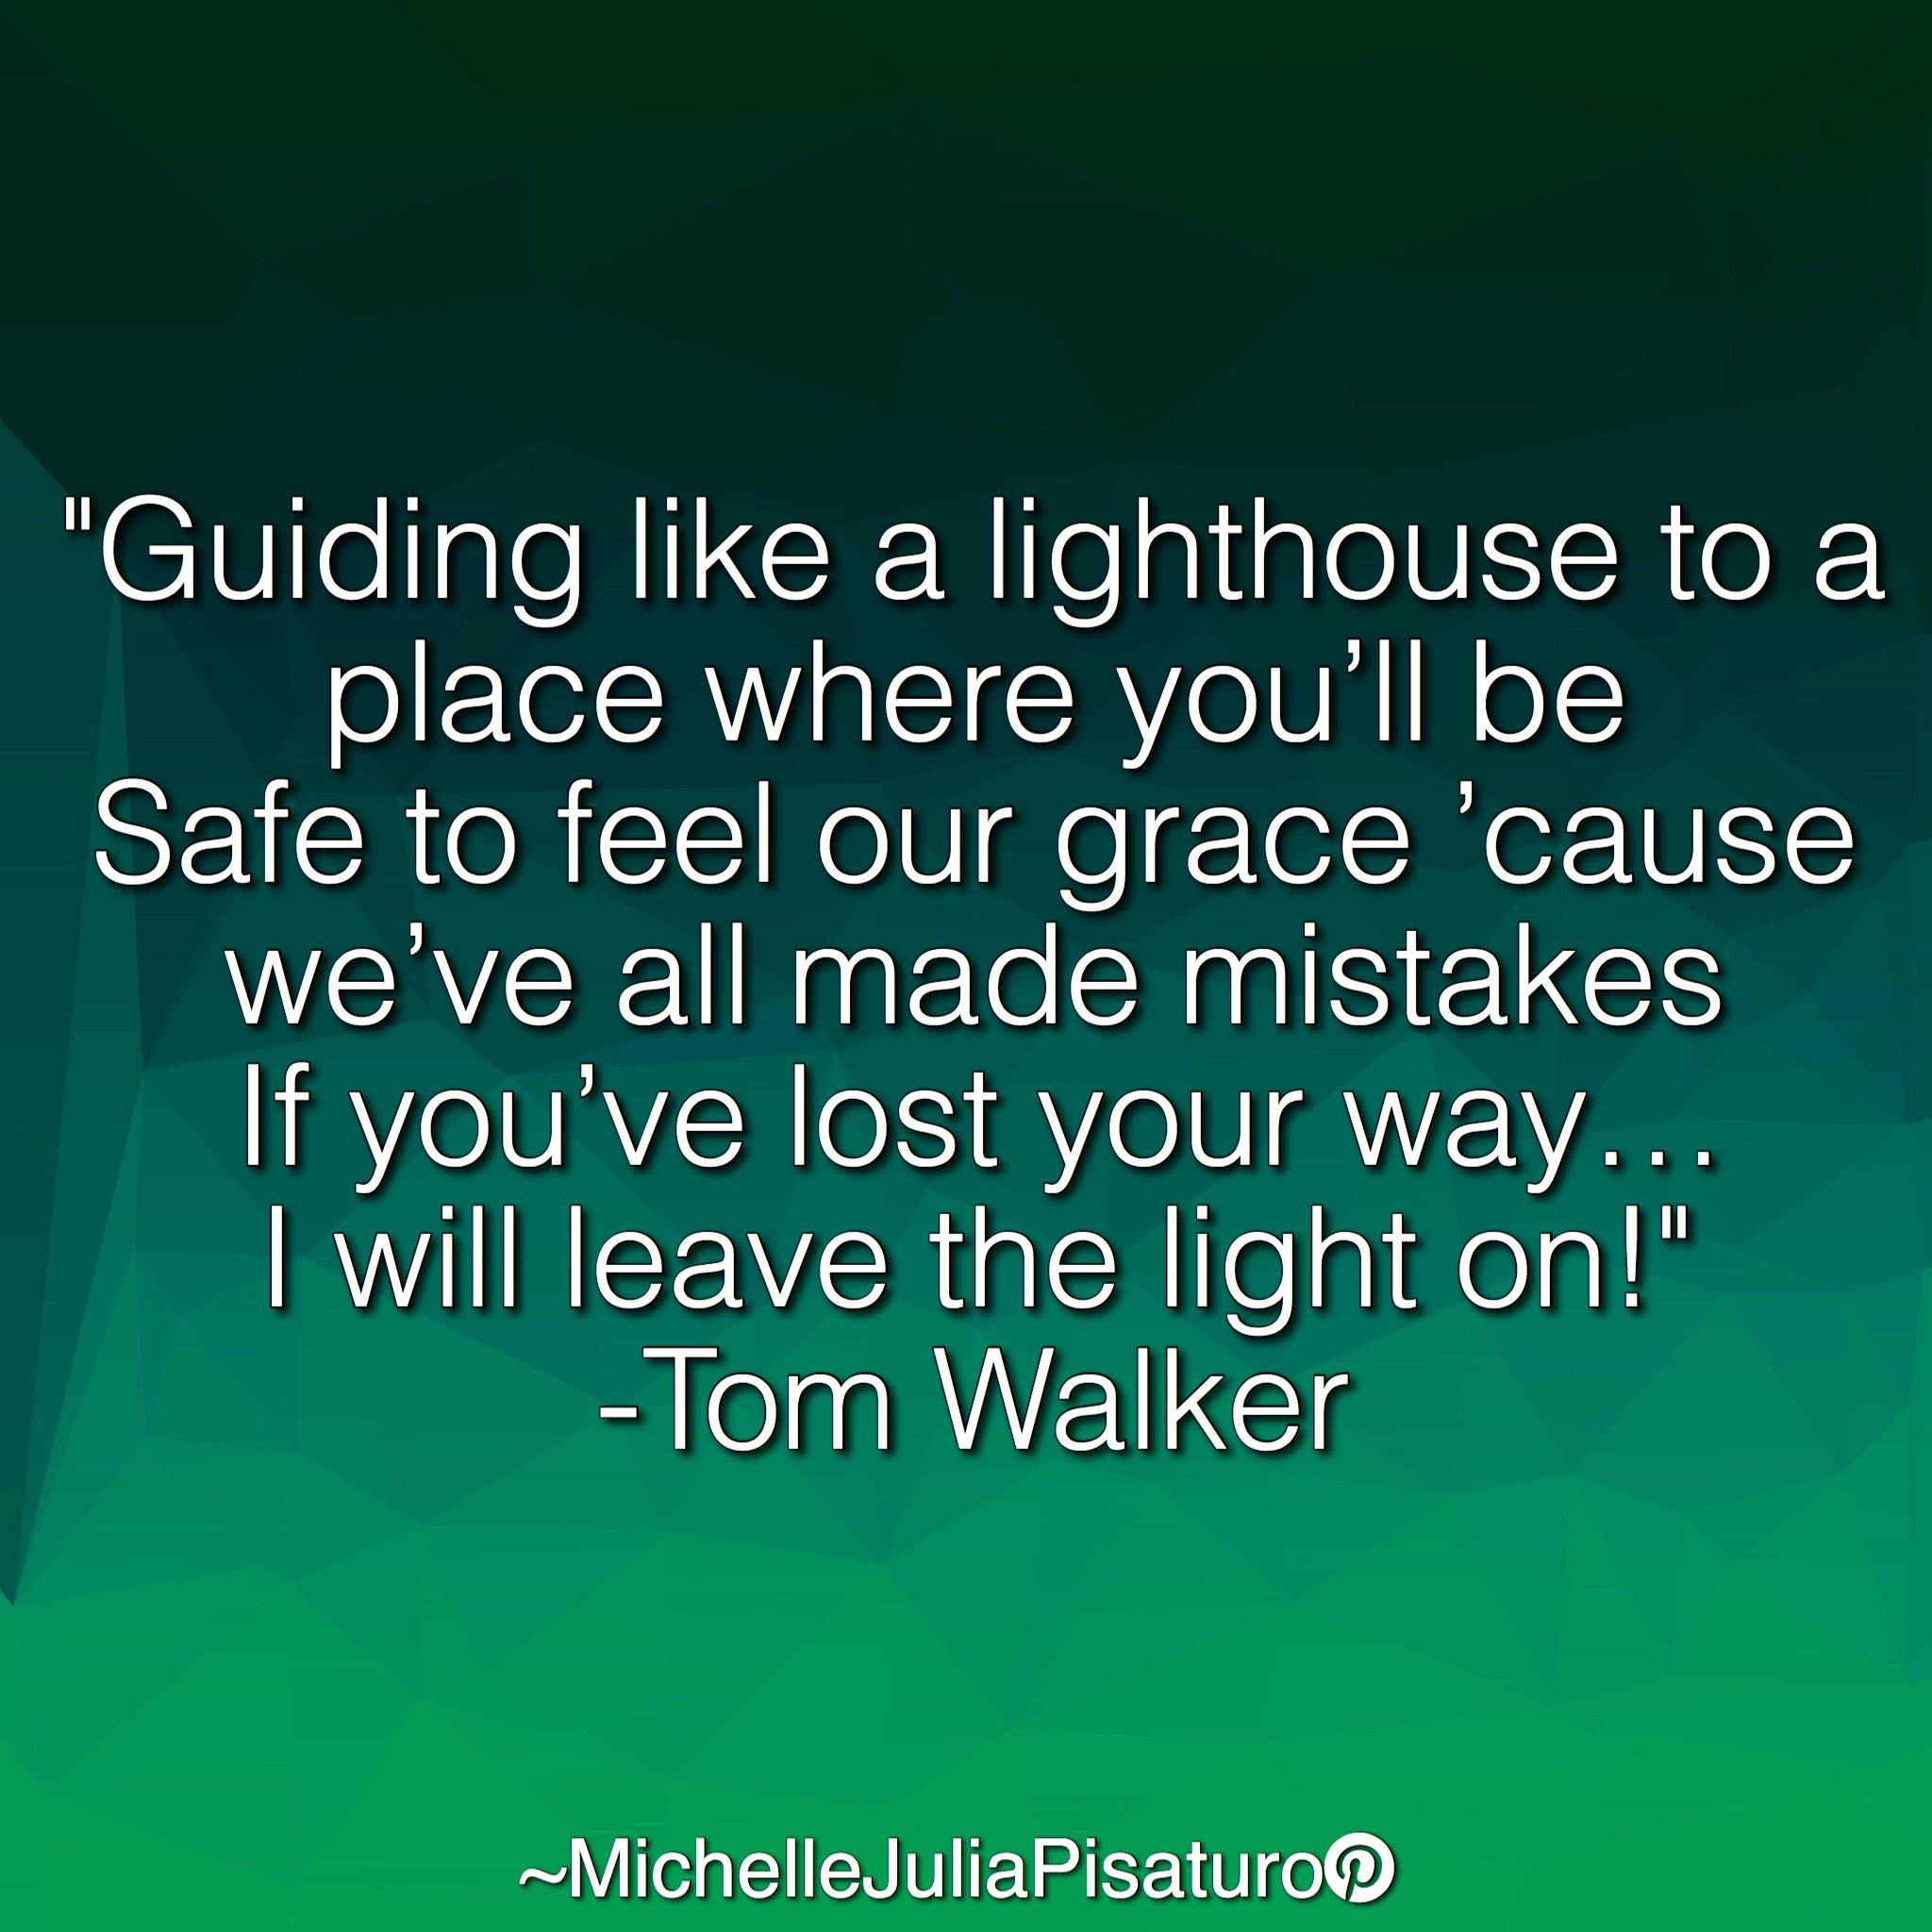 Guiding Like A Lighthouse To A Place Where You Ll Be Safe To Feel Our Grace Cause We Ve All Made Mistakes If You Ve Lost Your W Tom Walker Lyrics Music Heart